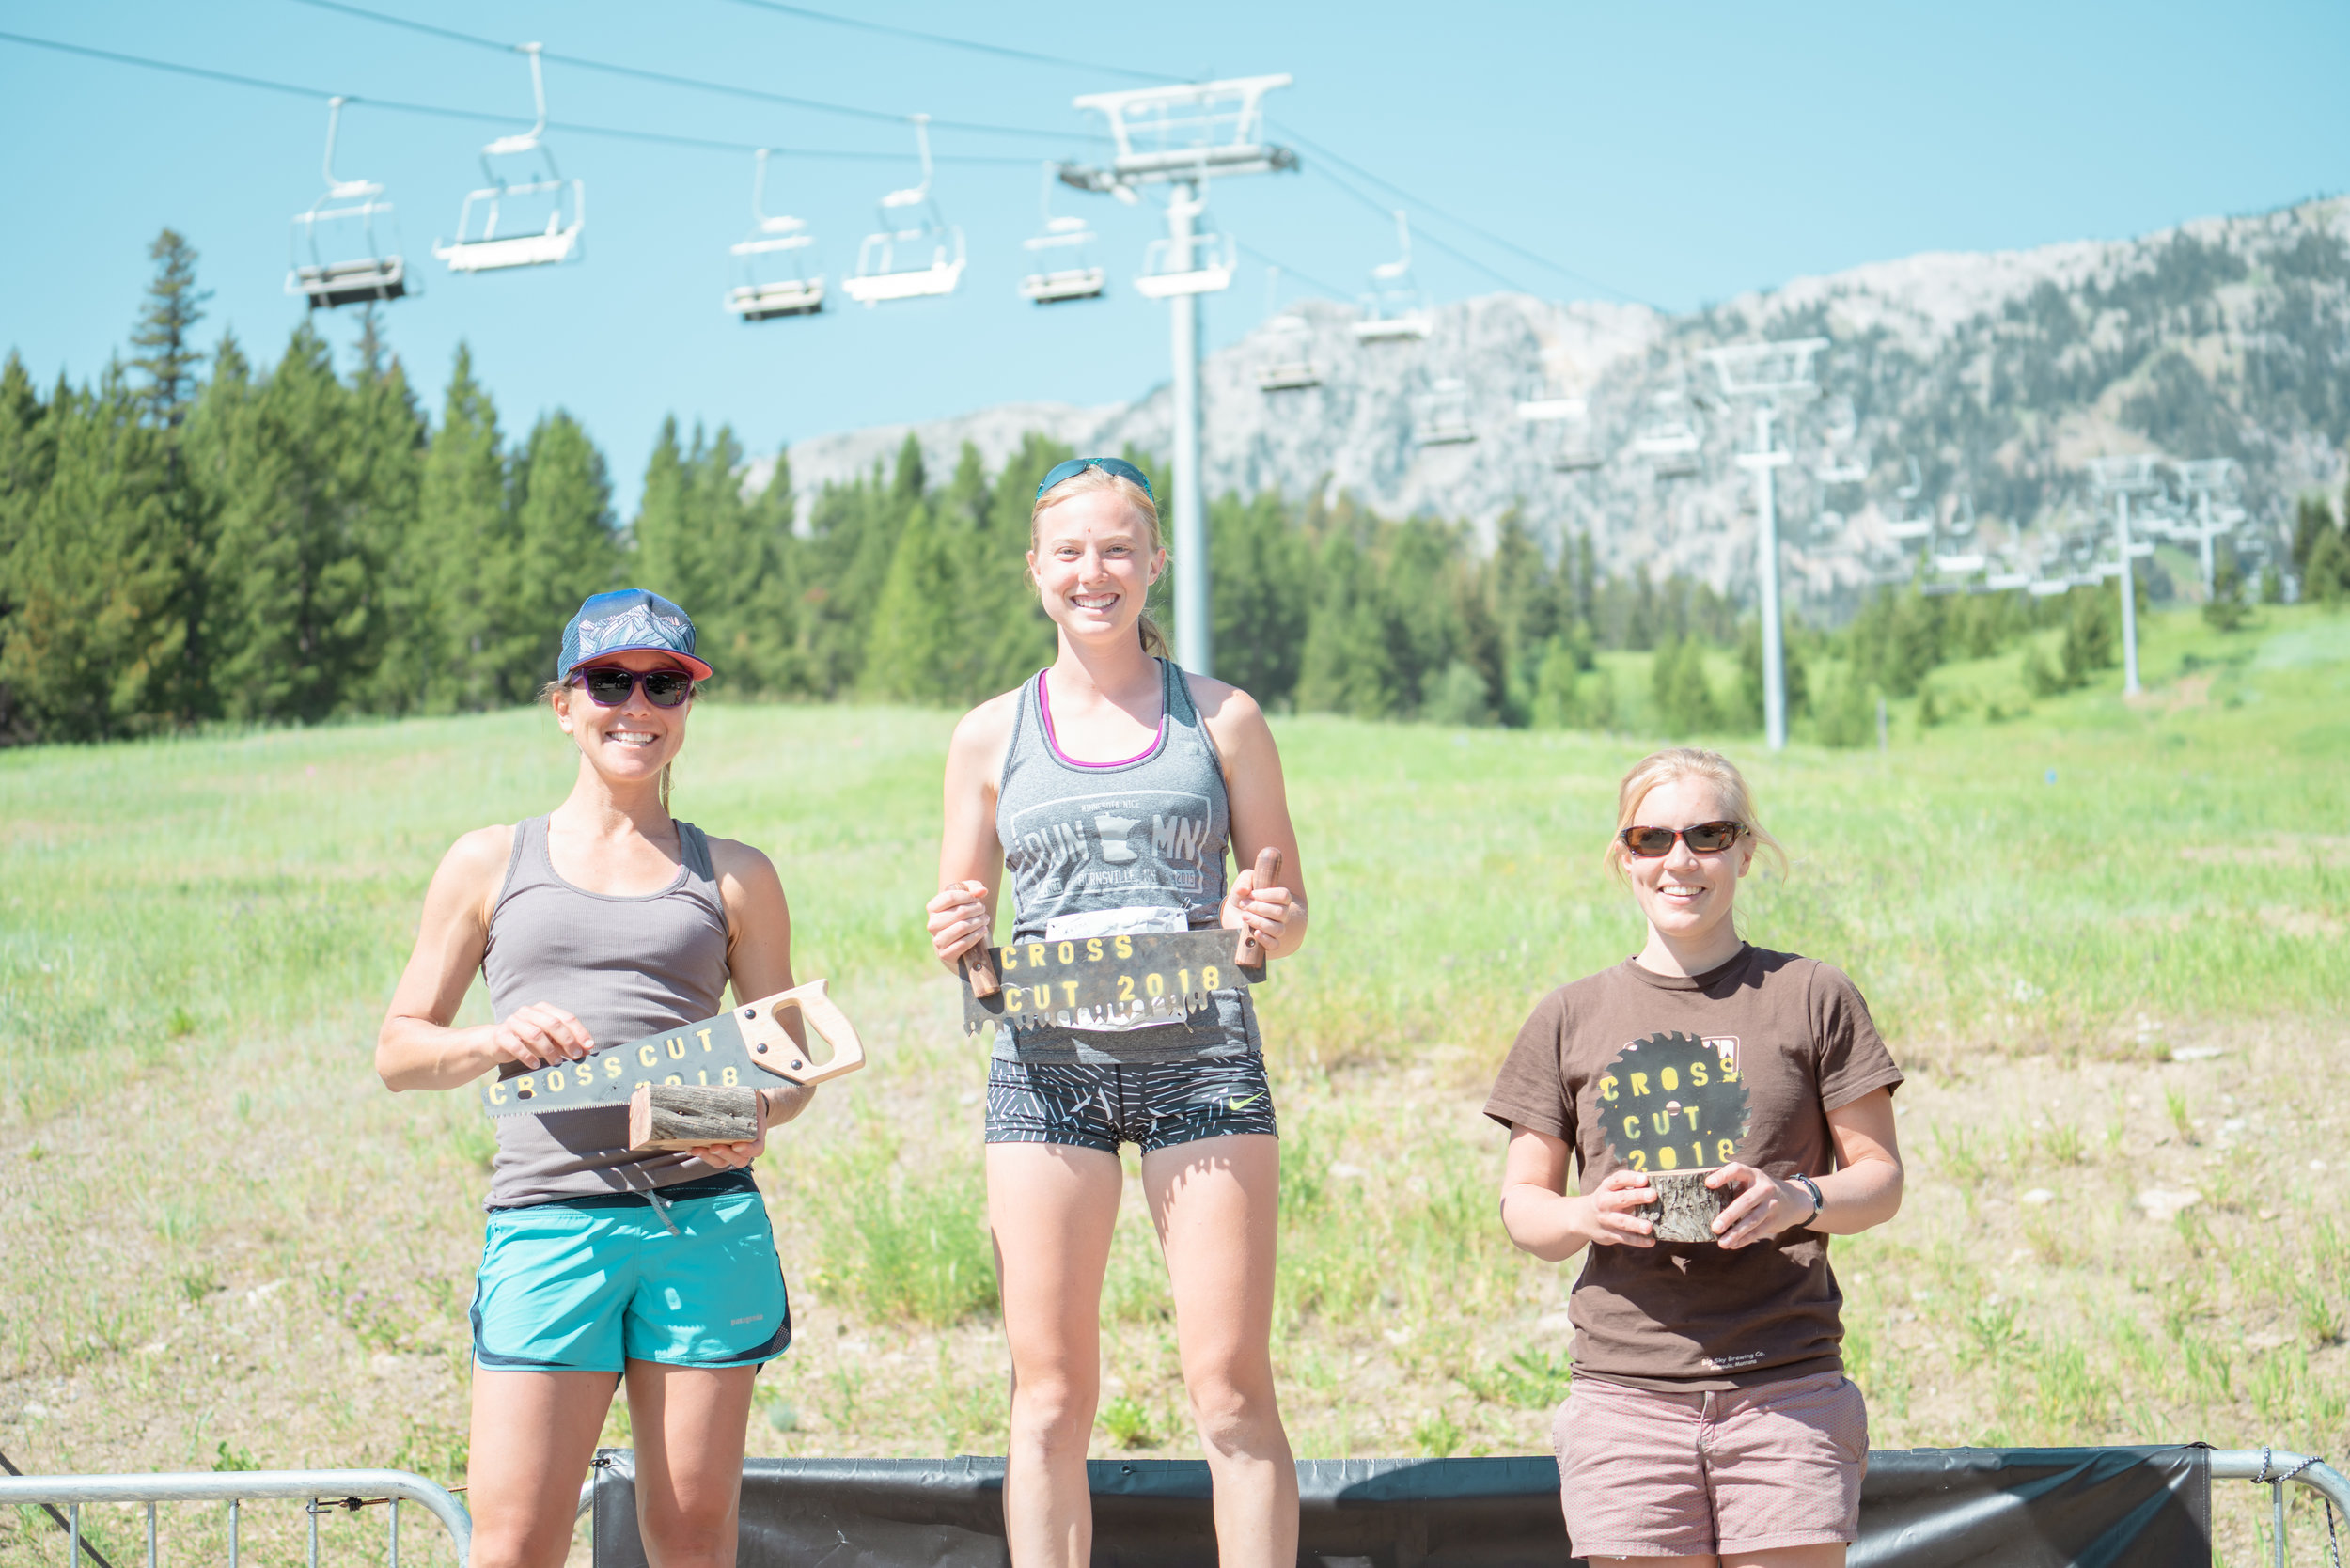 Runners getting their reward at Bozeman Running Co. racing of Crosscuts at Bridger Bowl just north of Bozeman, Montana.